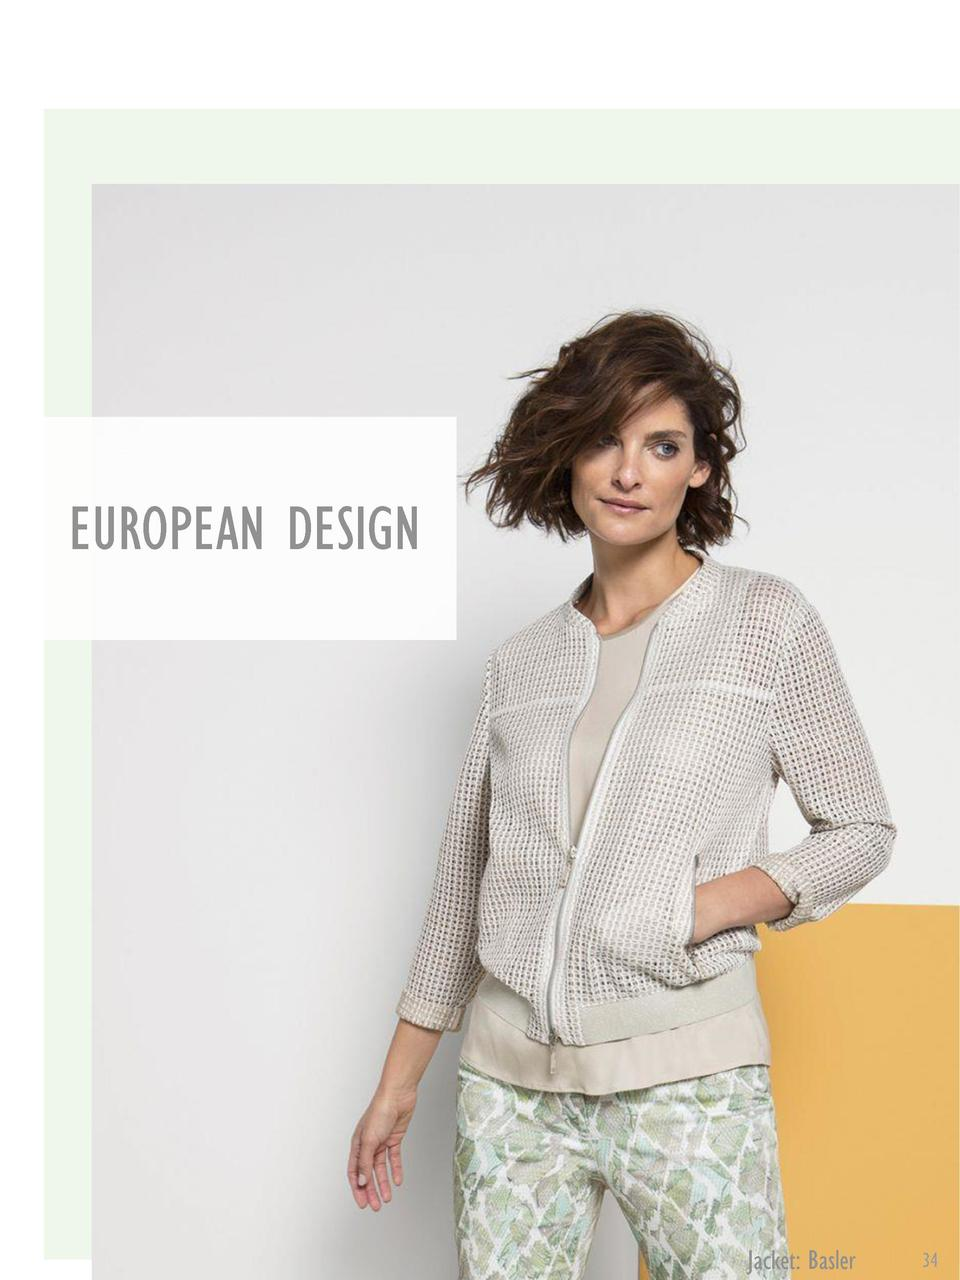 EUROPEAN DESIGN  Jacket  Basler  34